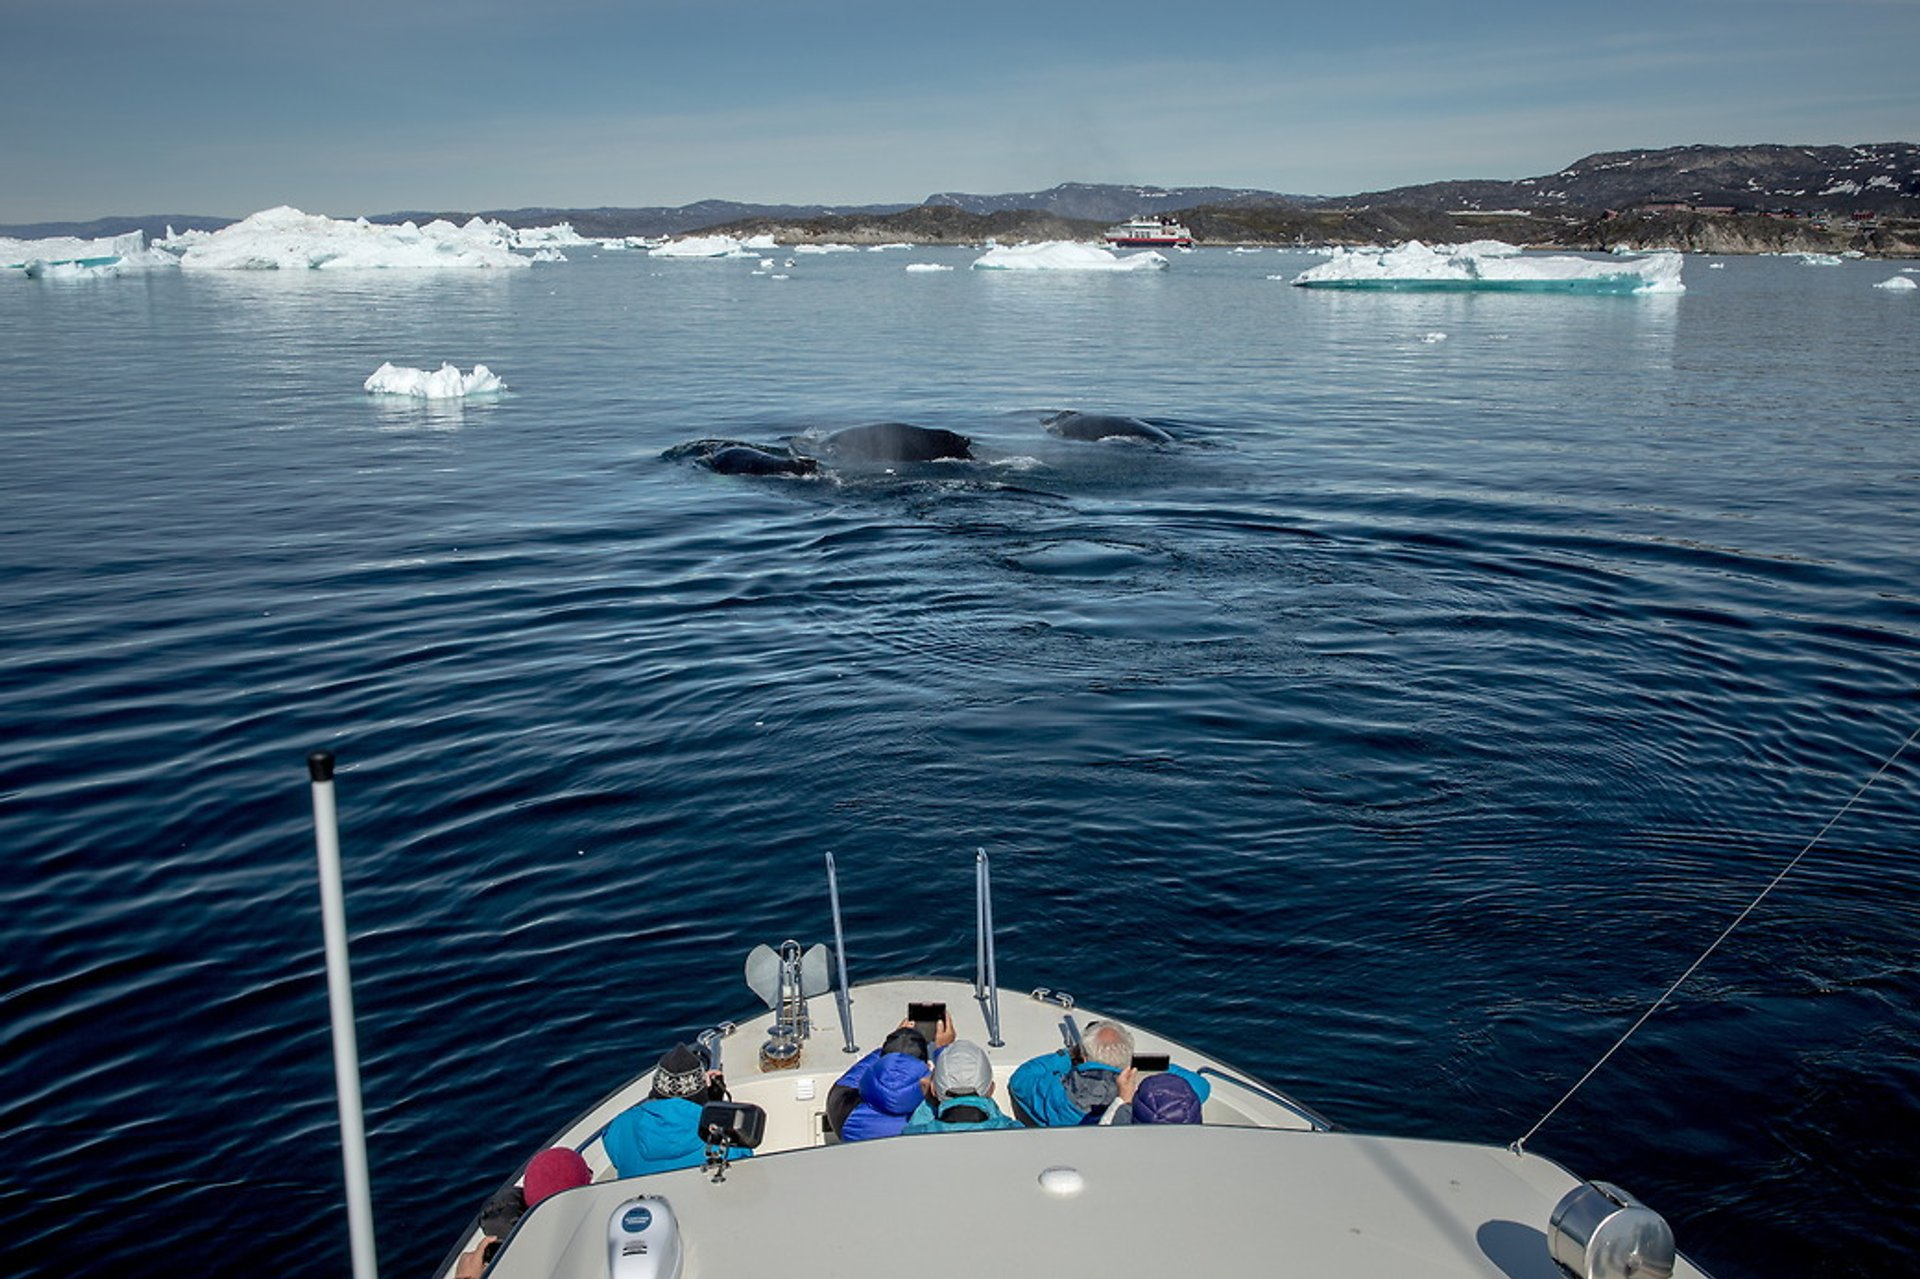 Whale Watching in Greenland 2020 - Best Time